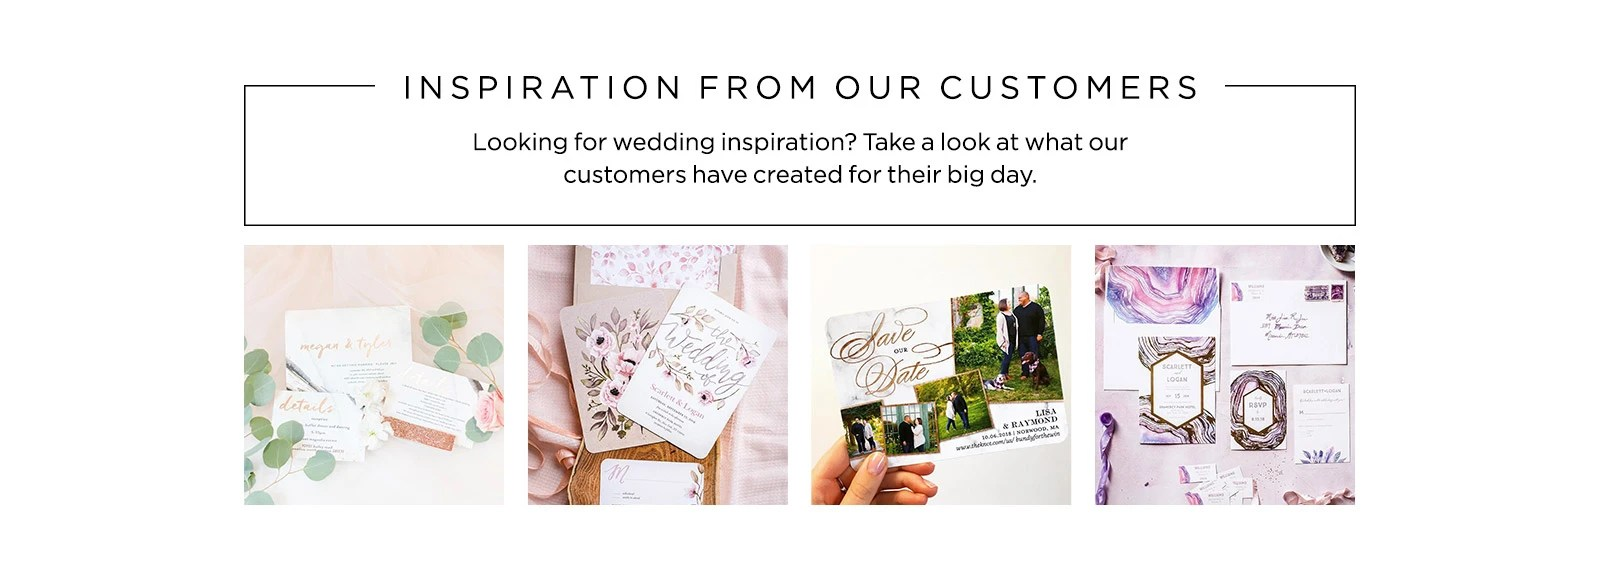 Create, Dream And Get Inspired At The Wedding Shop